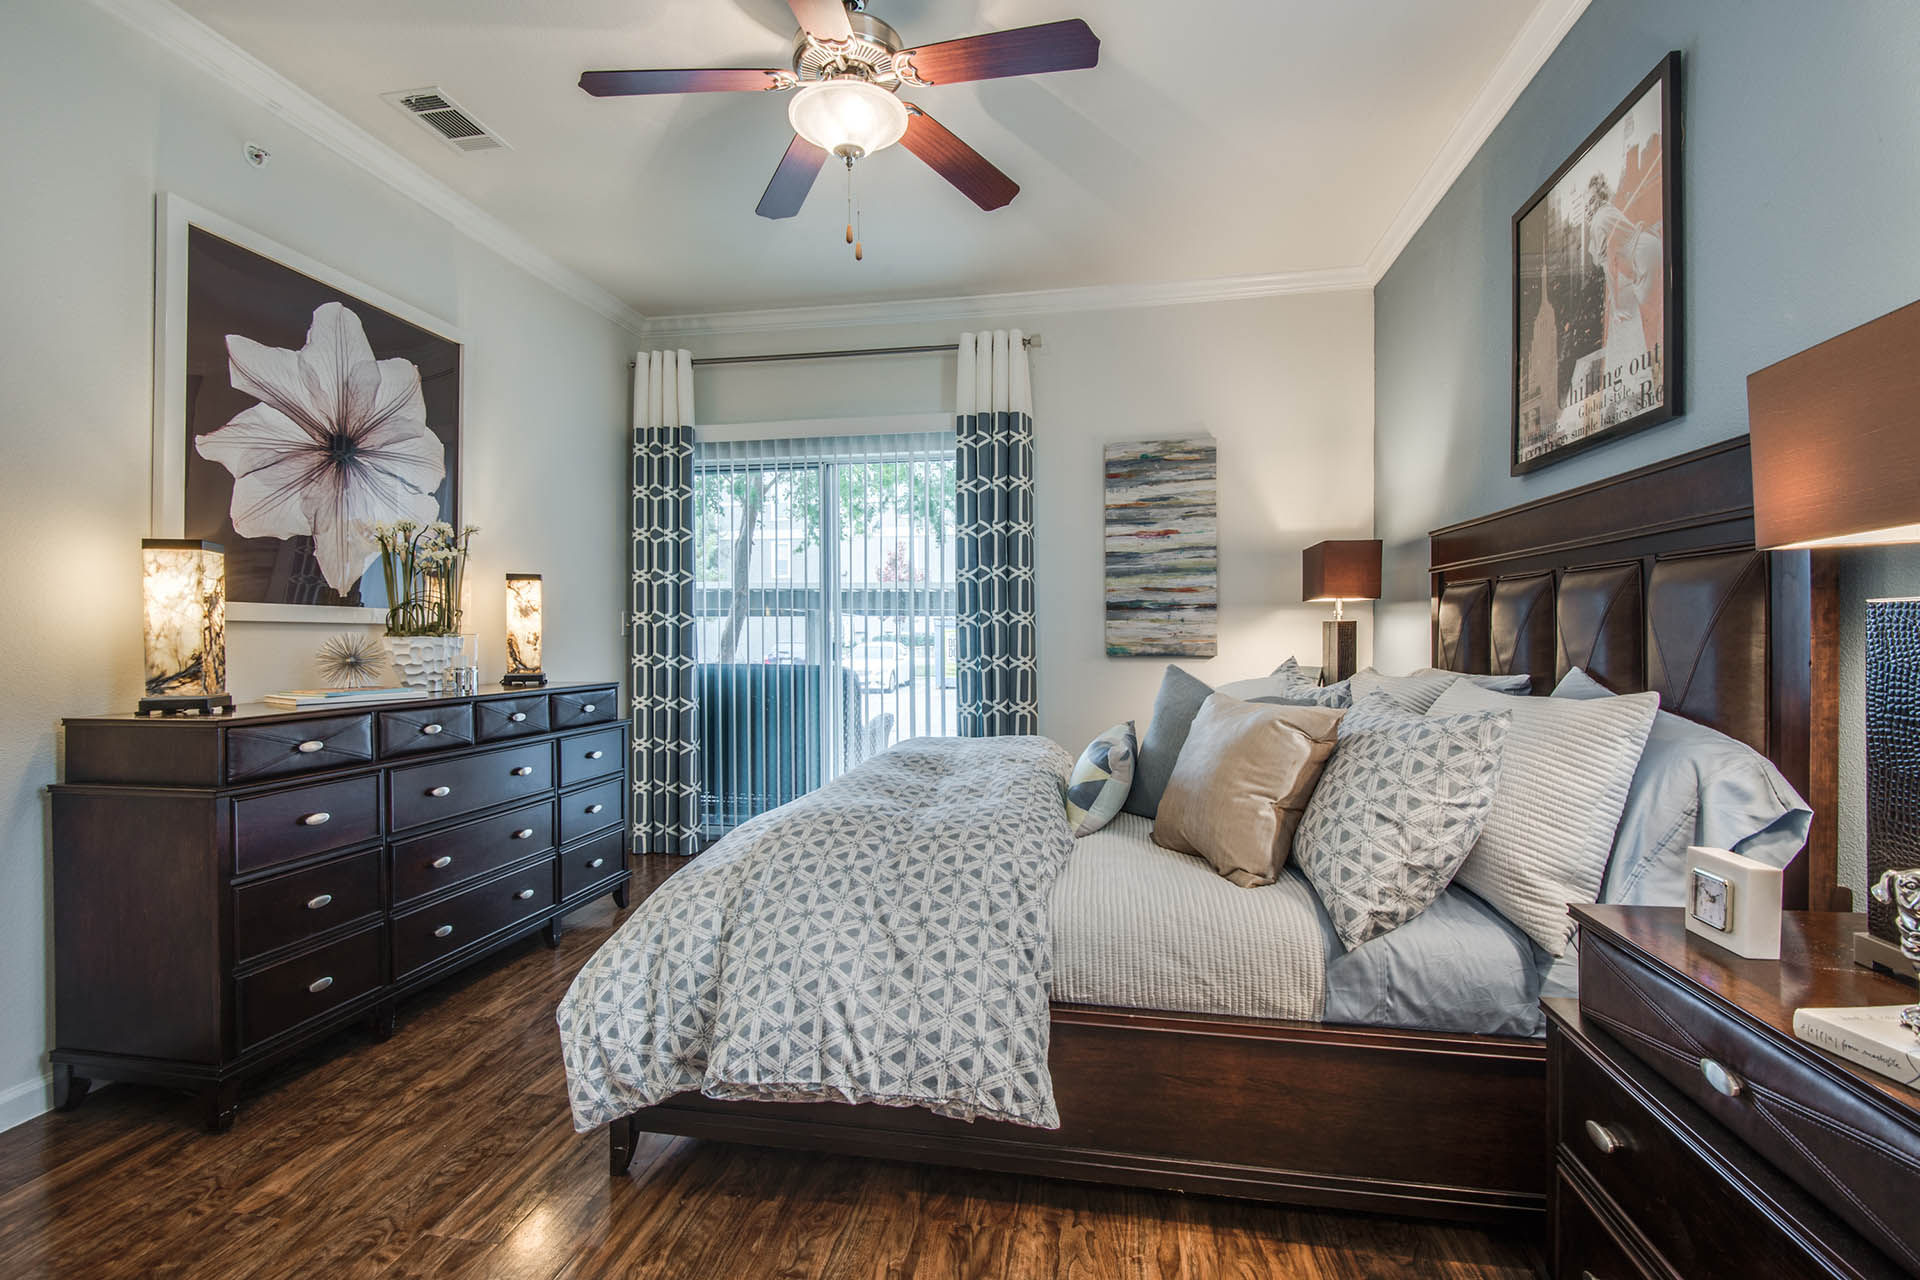 Live in Cozy Bedrooms at Orion Prosper, Prosper, TX